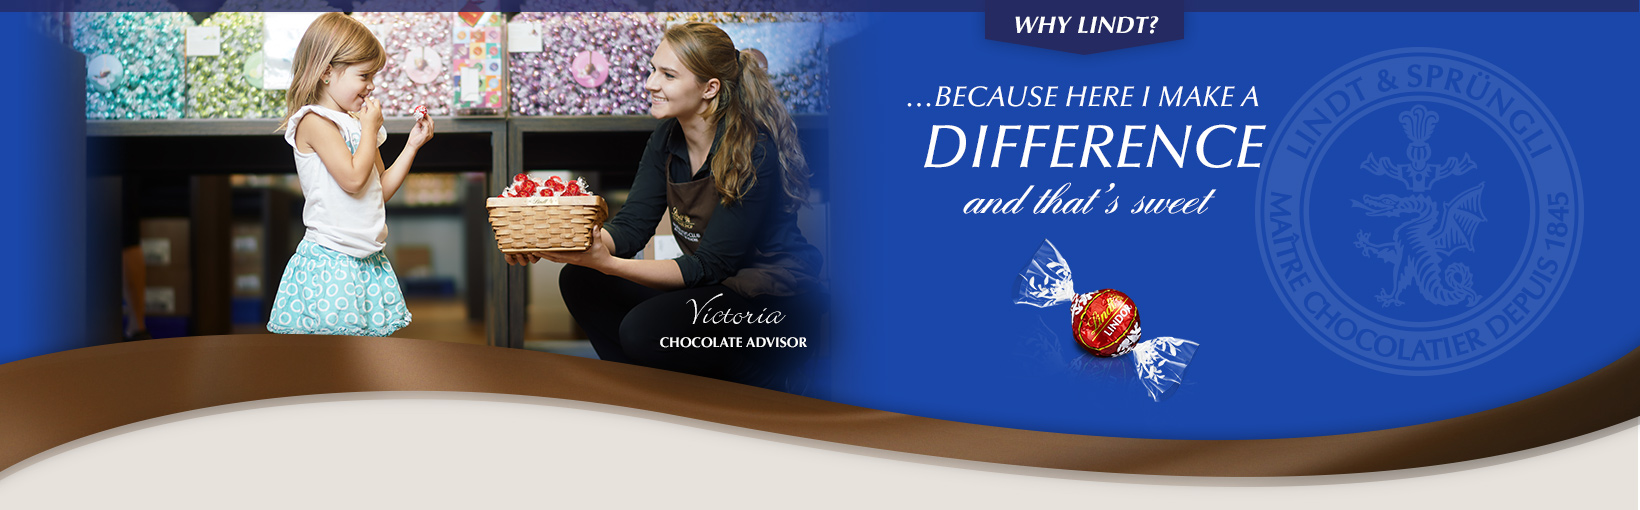 Why Lindt? …Because here I make a difference and that's sweet. Victoria, Chocolate Advisor